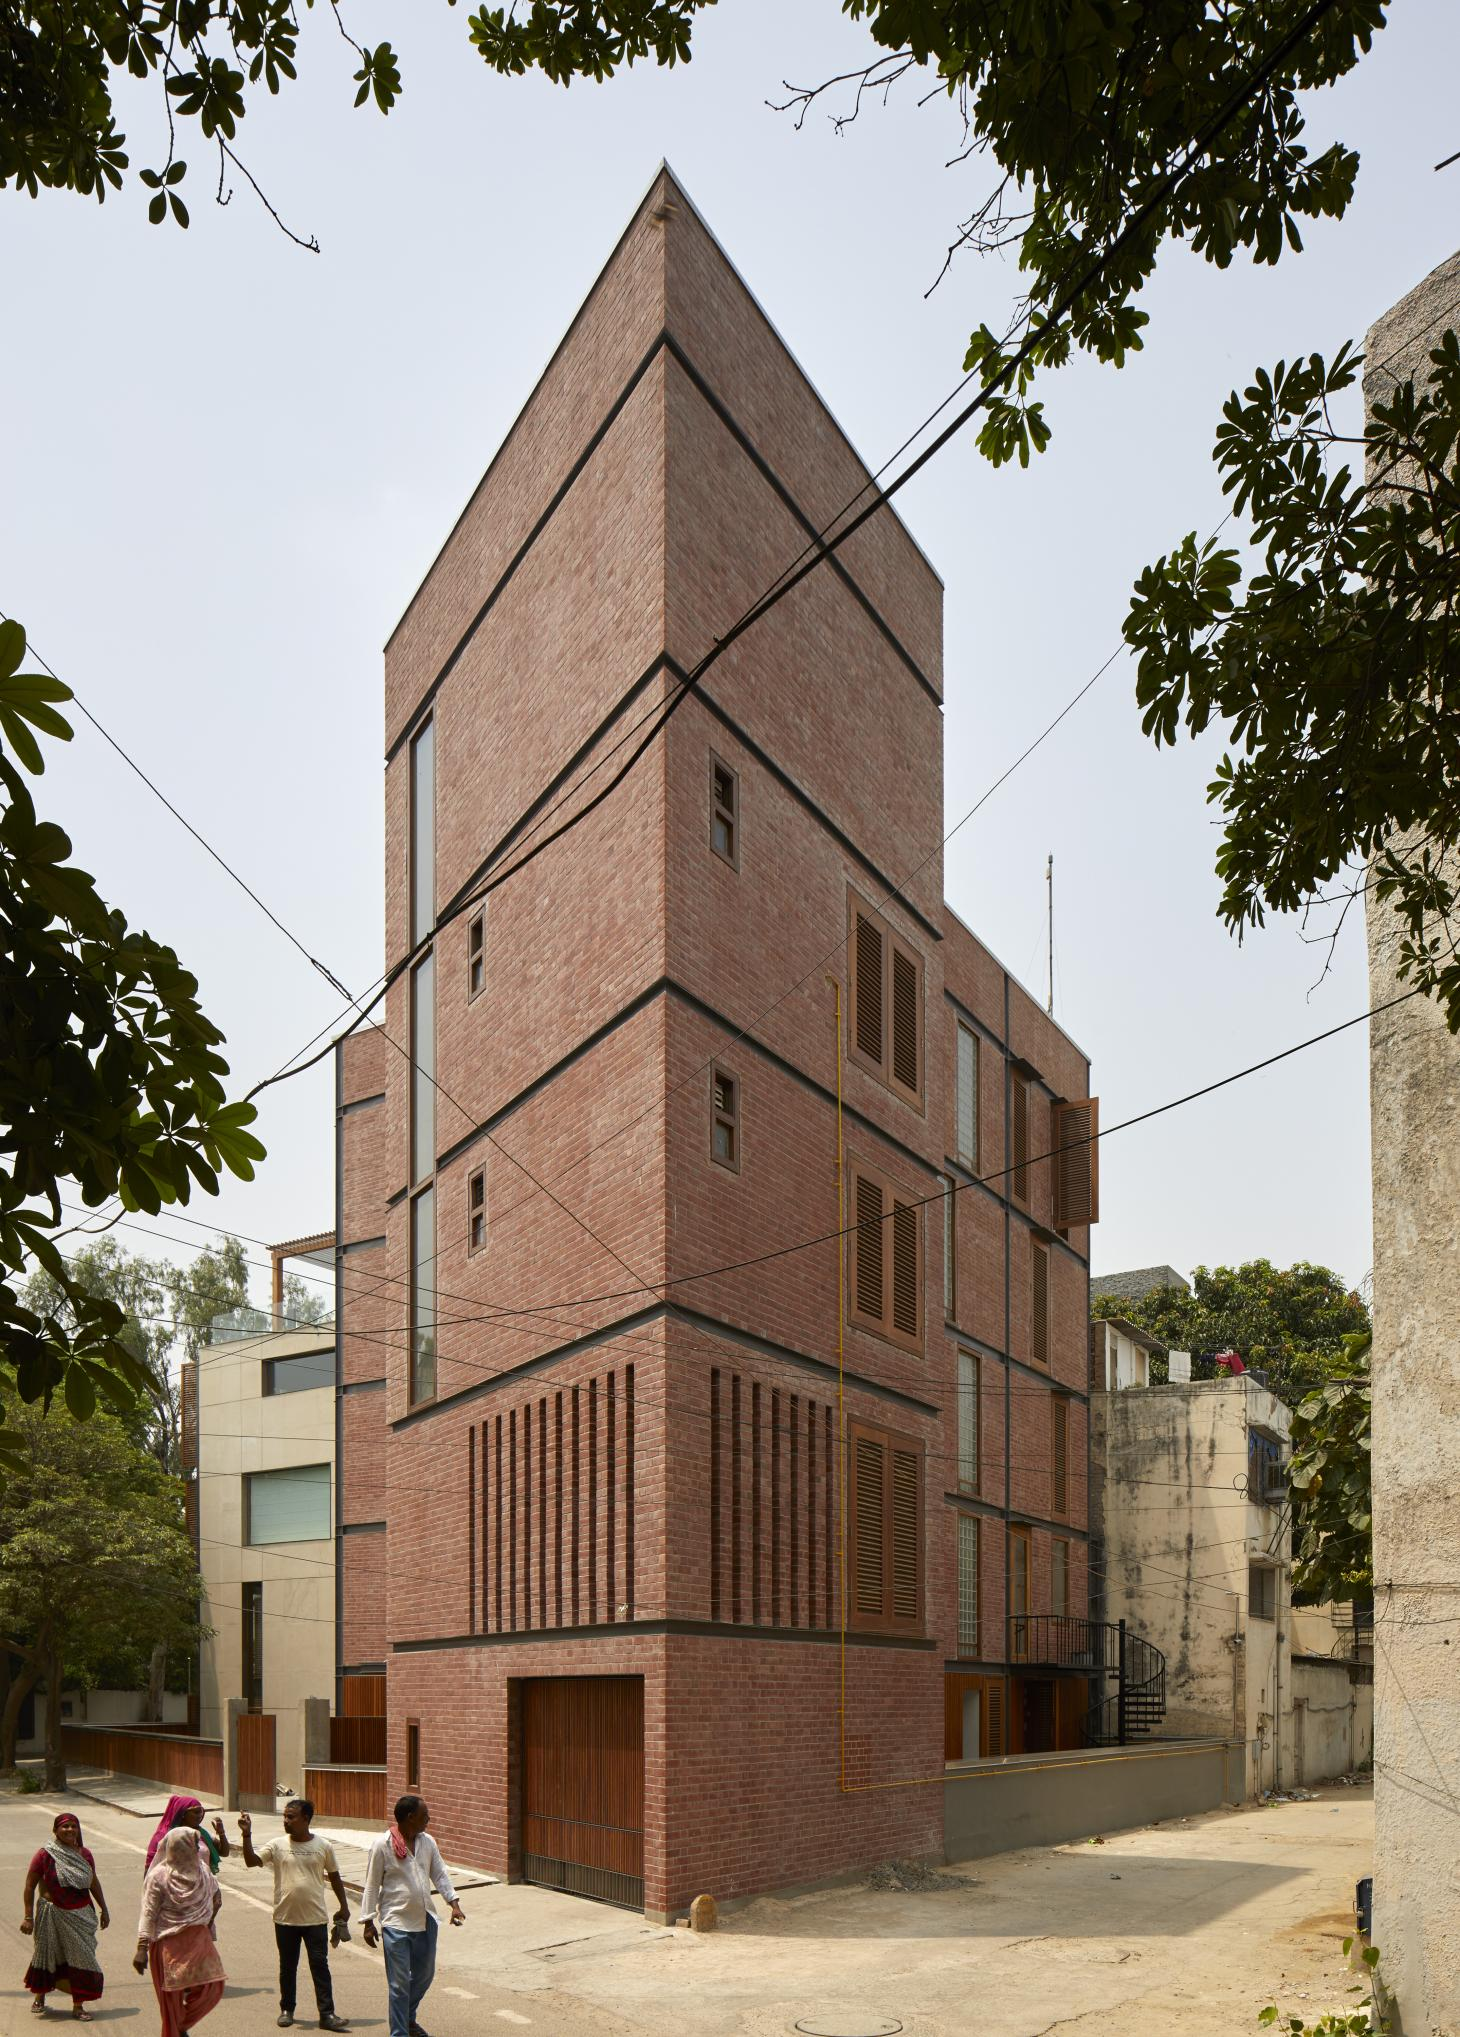 Brick facade of Martand Khosla's house in South Delhi